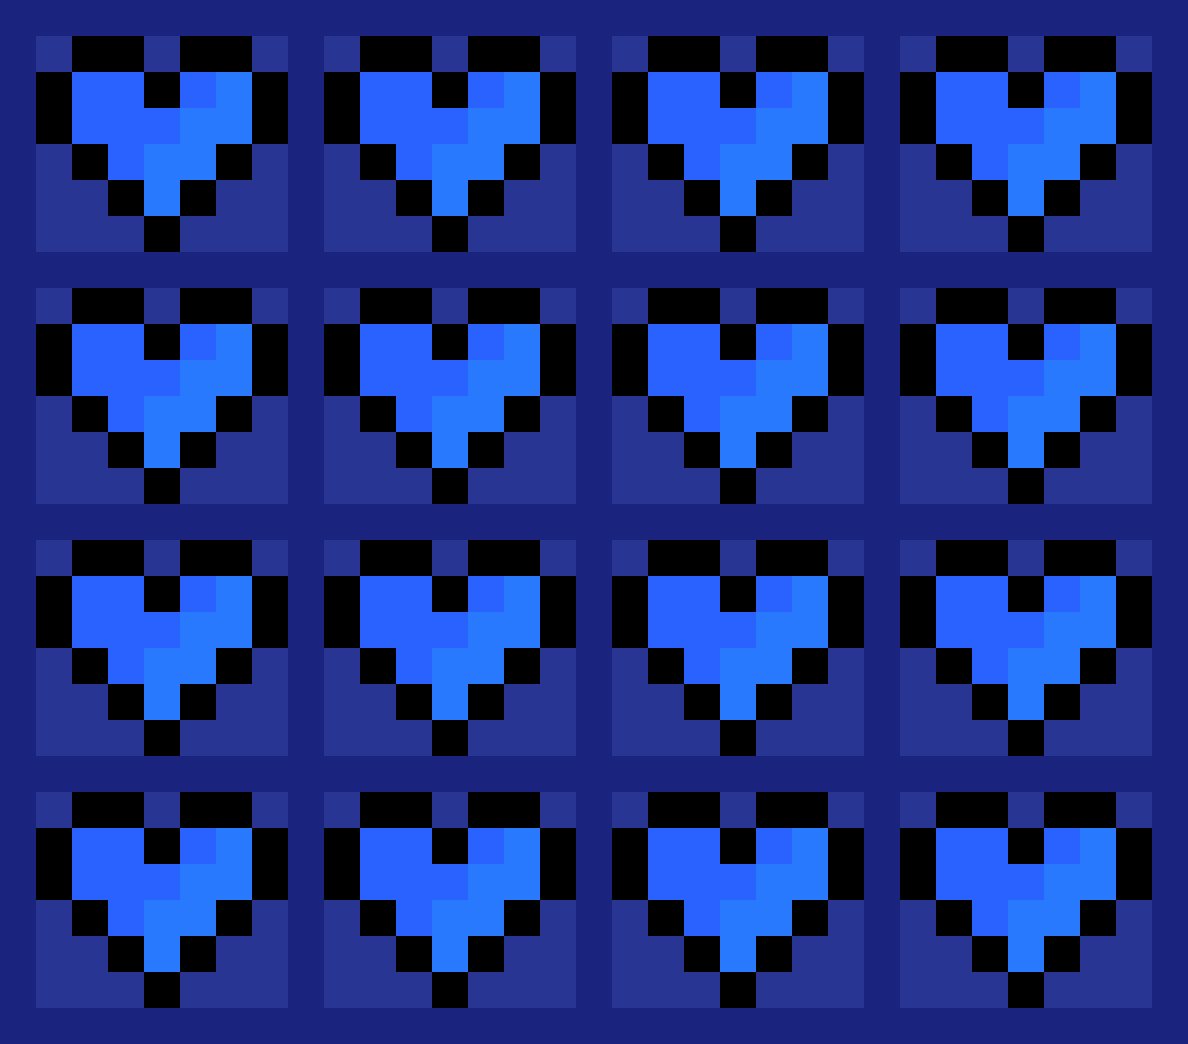 Blue Hearts by AceEverwoode